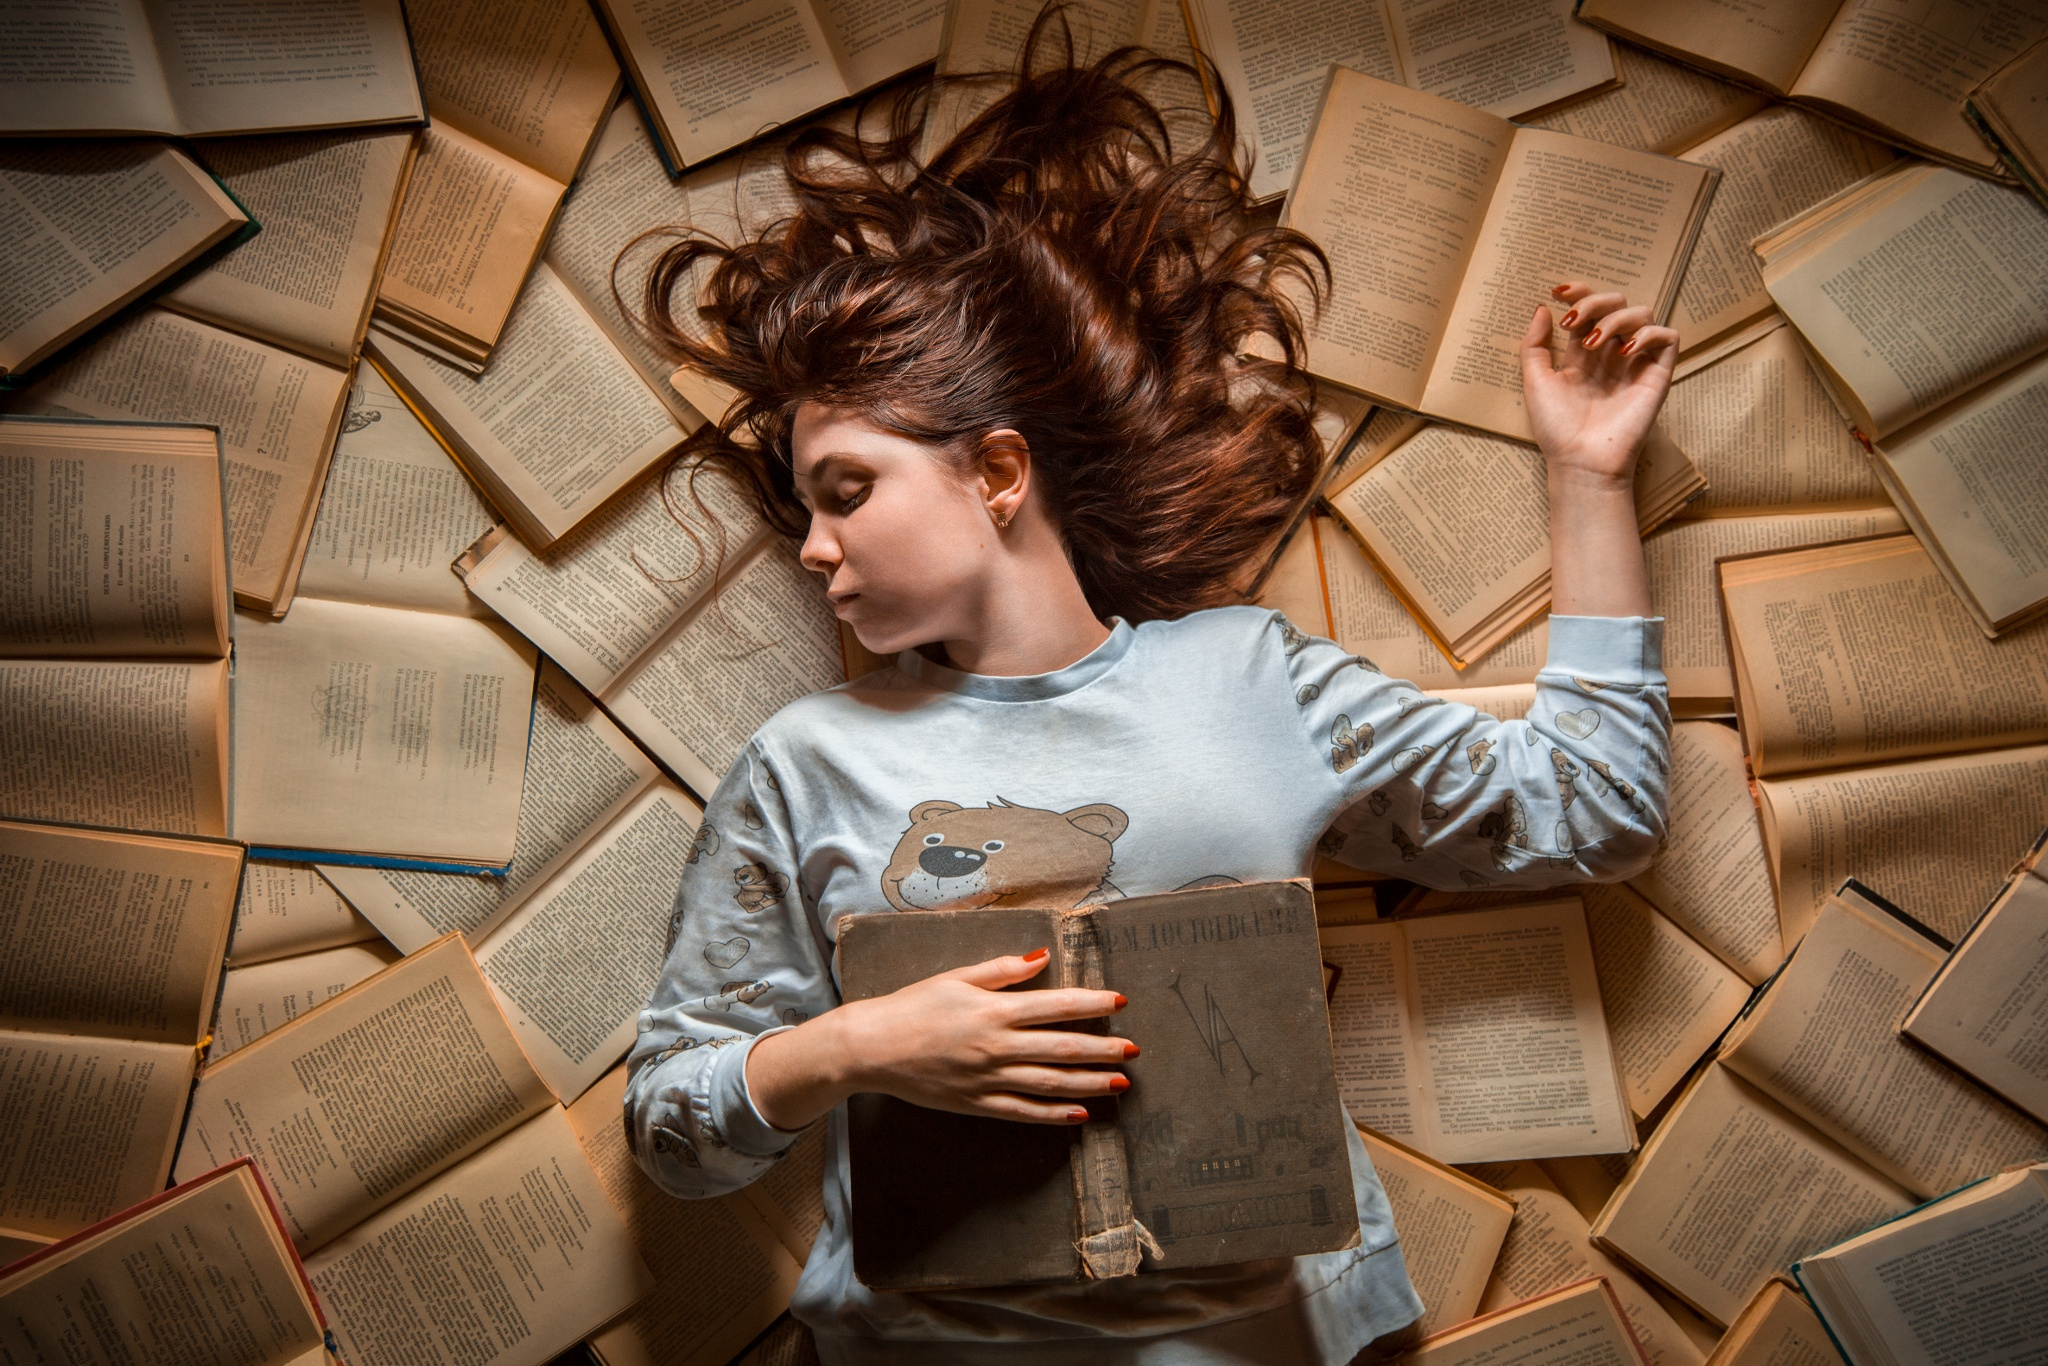 An Ode to Books: 44 Photos that Will Feed a Book Lover's Soul